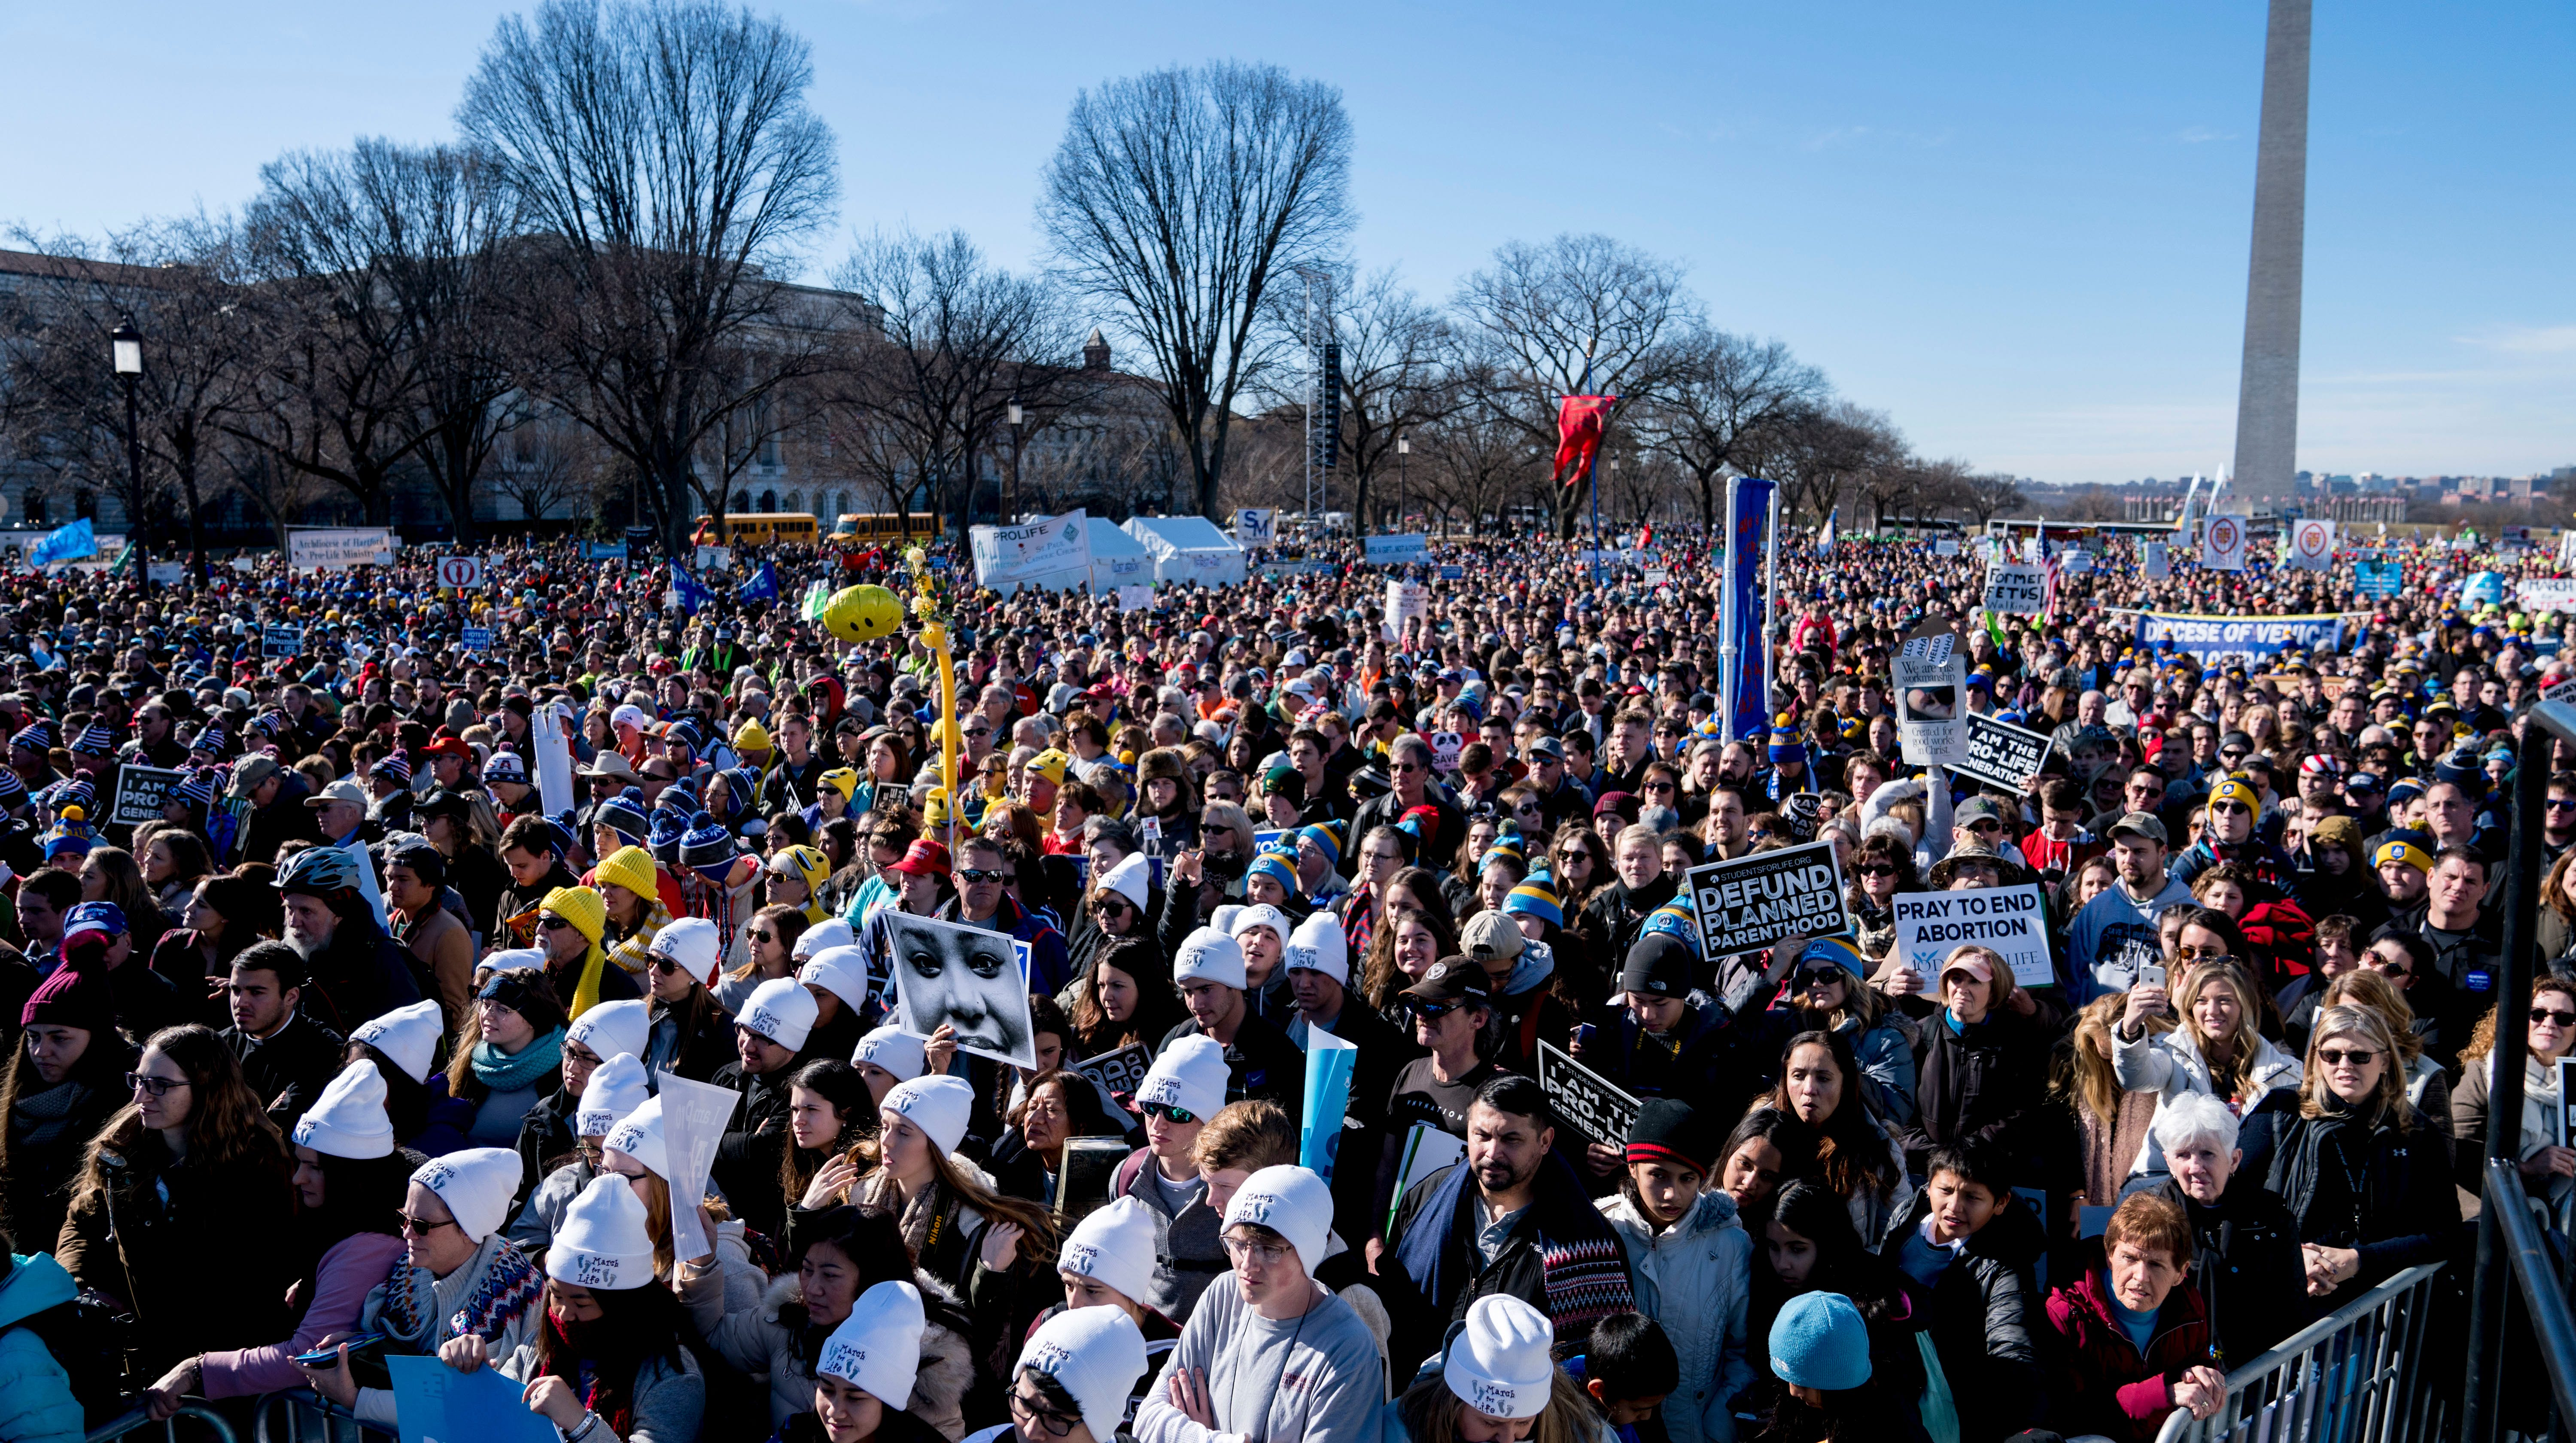 Anti-abortion activists rally on the National Mall in Washington, D.C., on Jan. 19, 2018, during the annual March for Life.